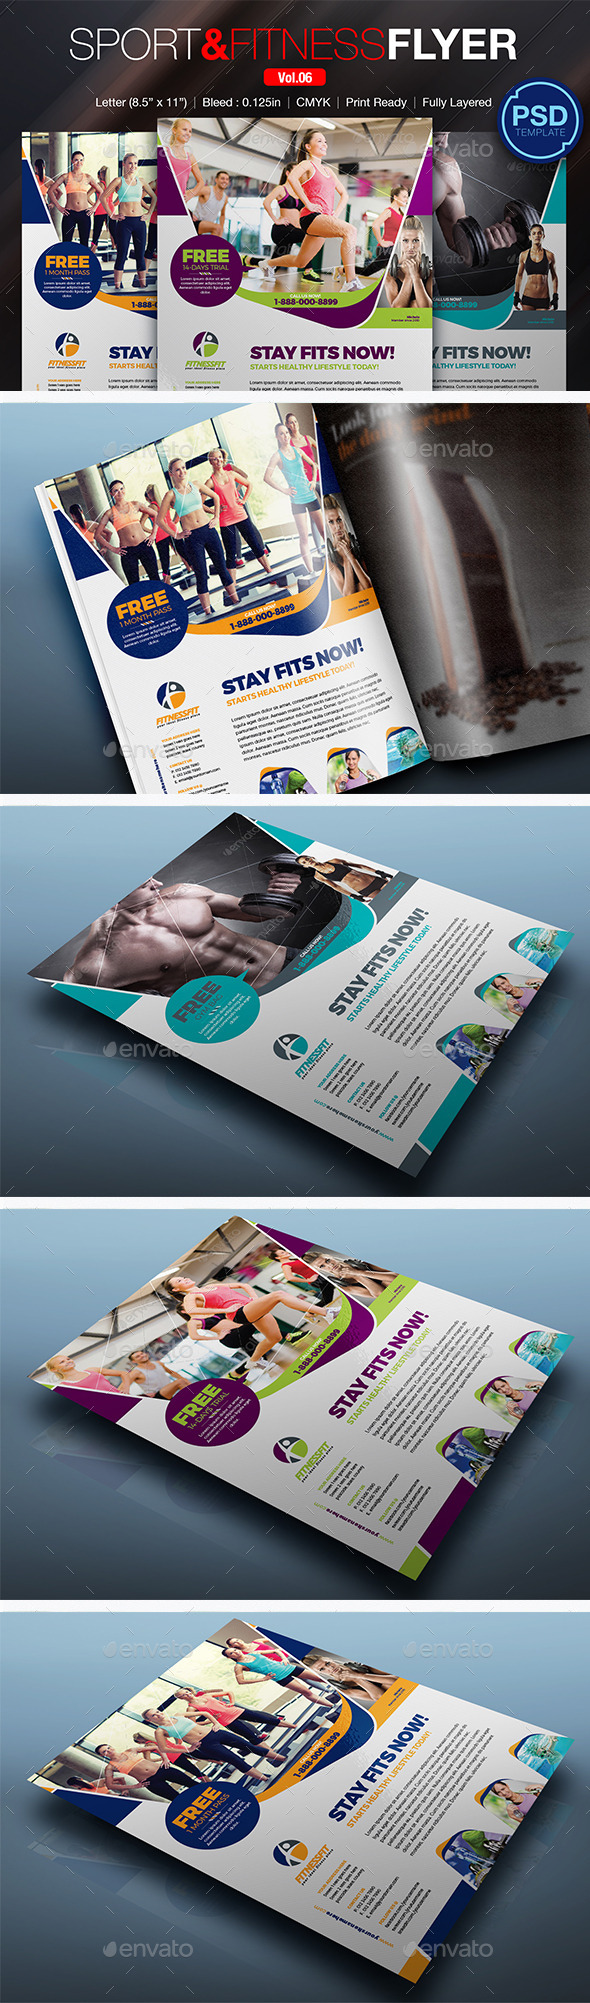 GraphicRiver Sport & Fitness Flyer Vol.06 10783012